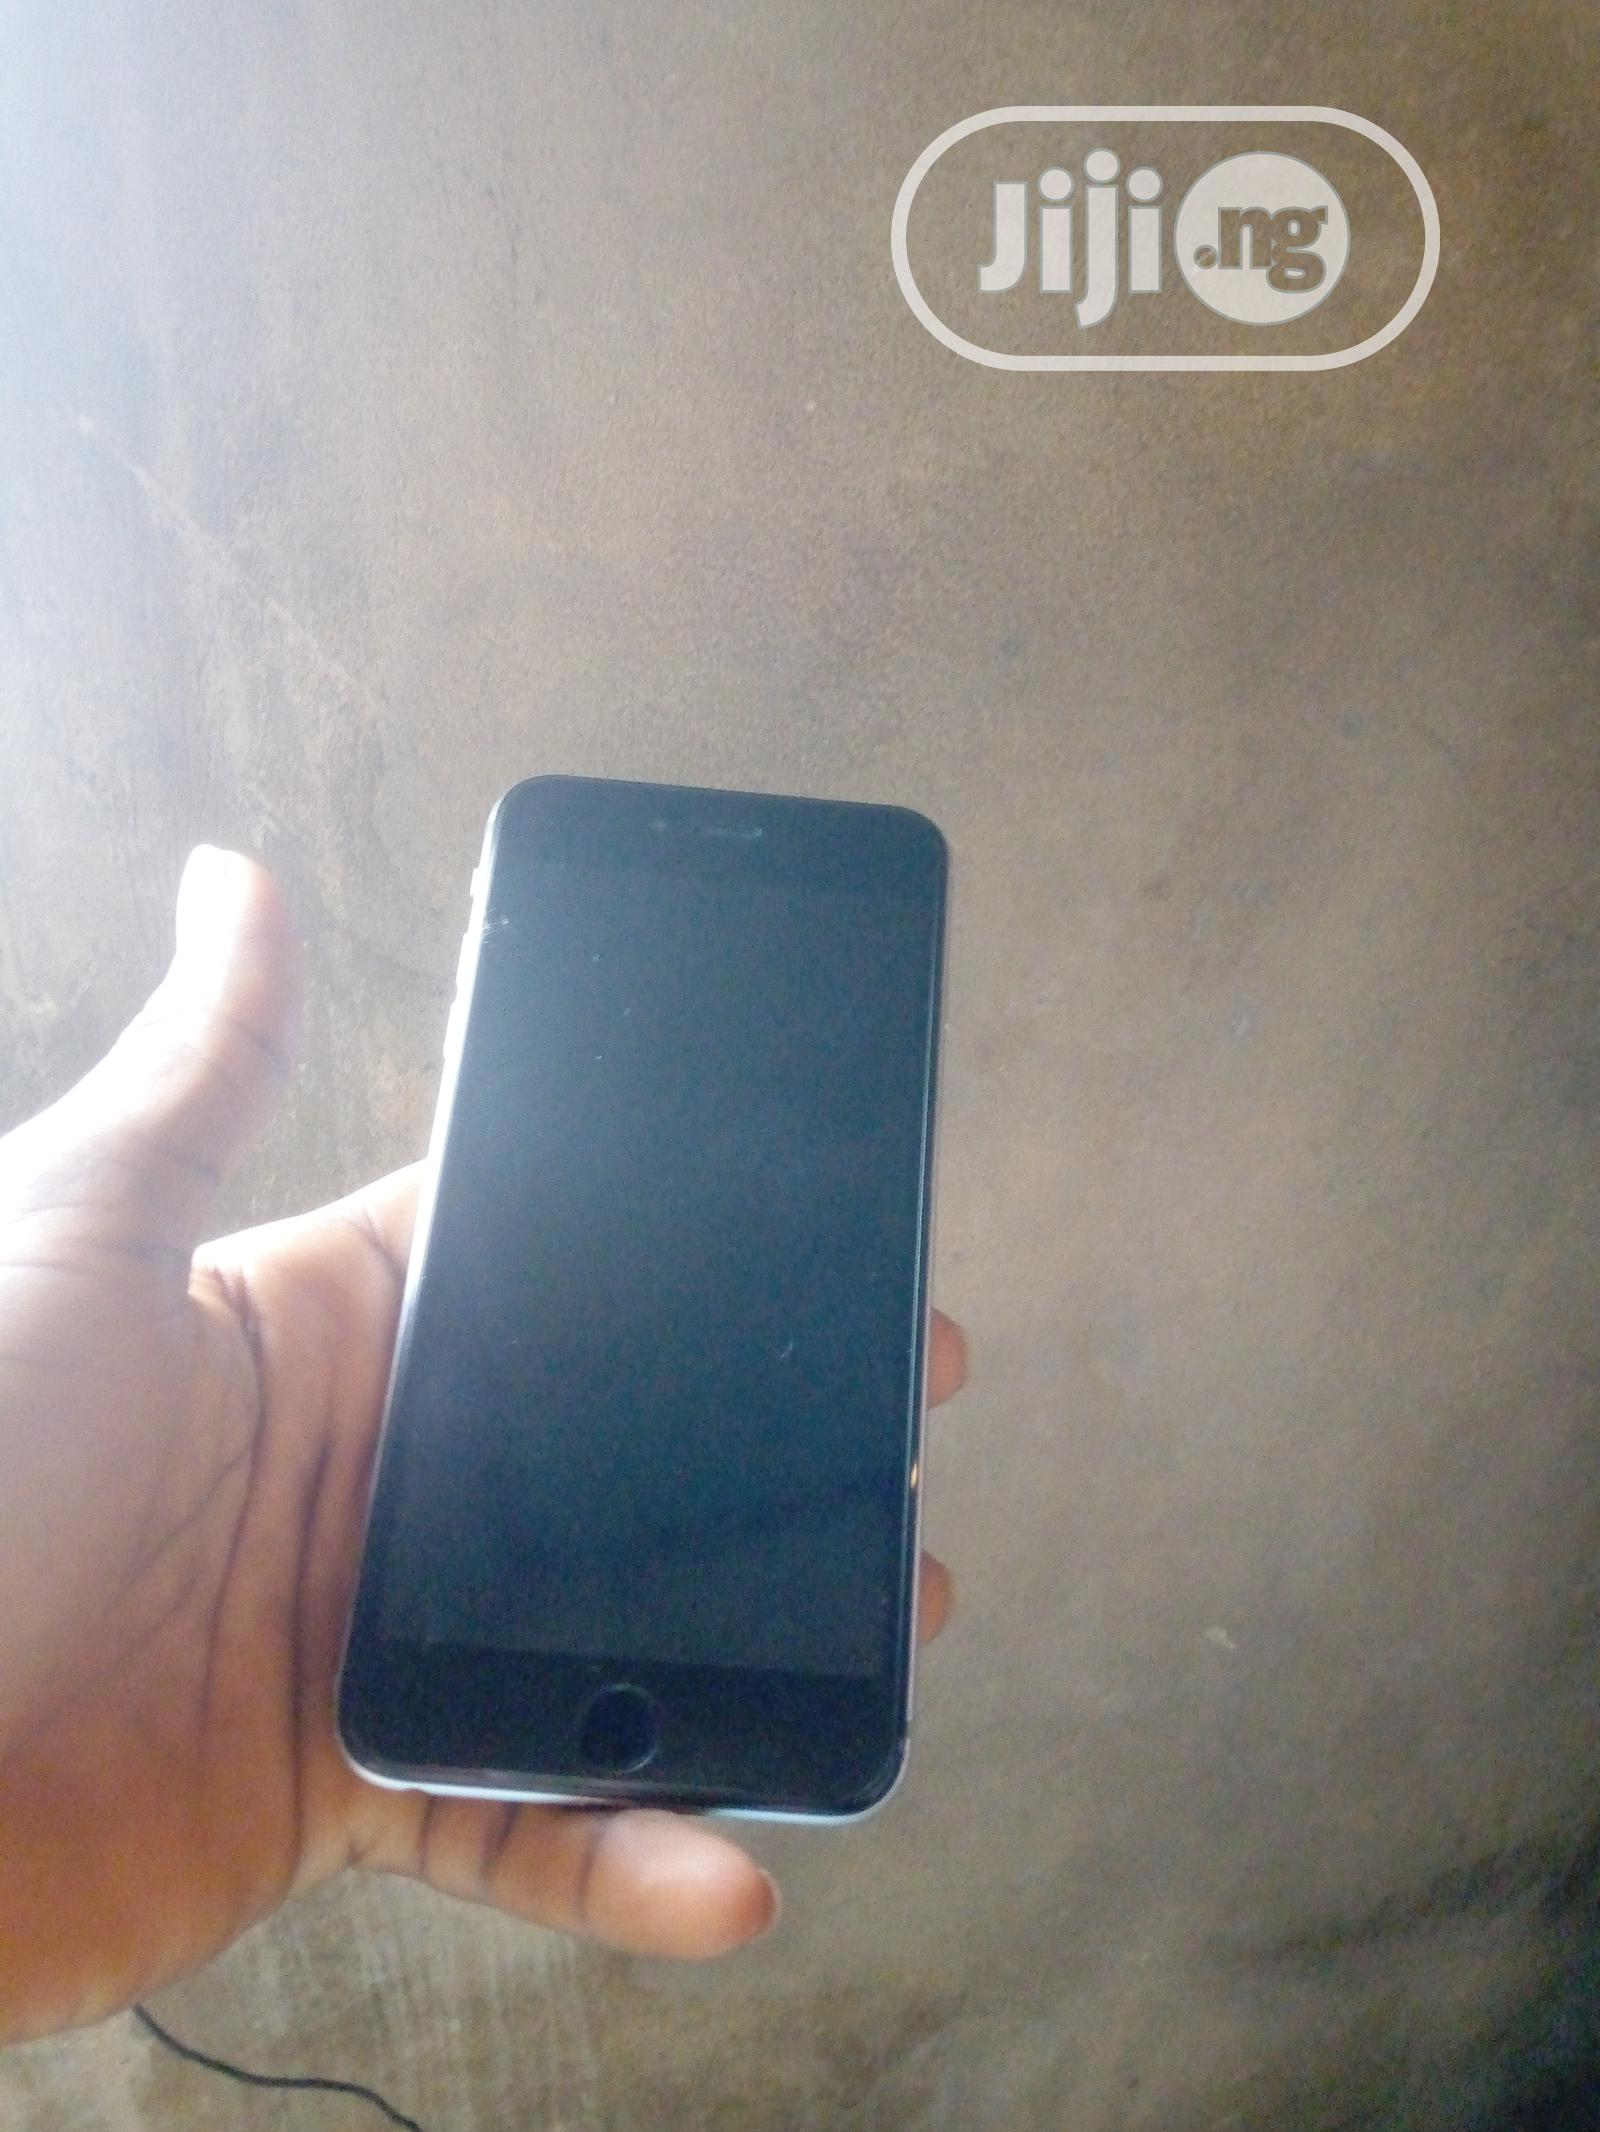 Archive: Apple iPhone 6 Plus 64 GB Black